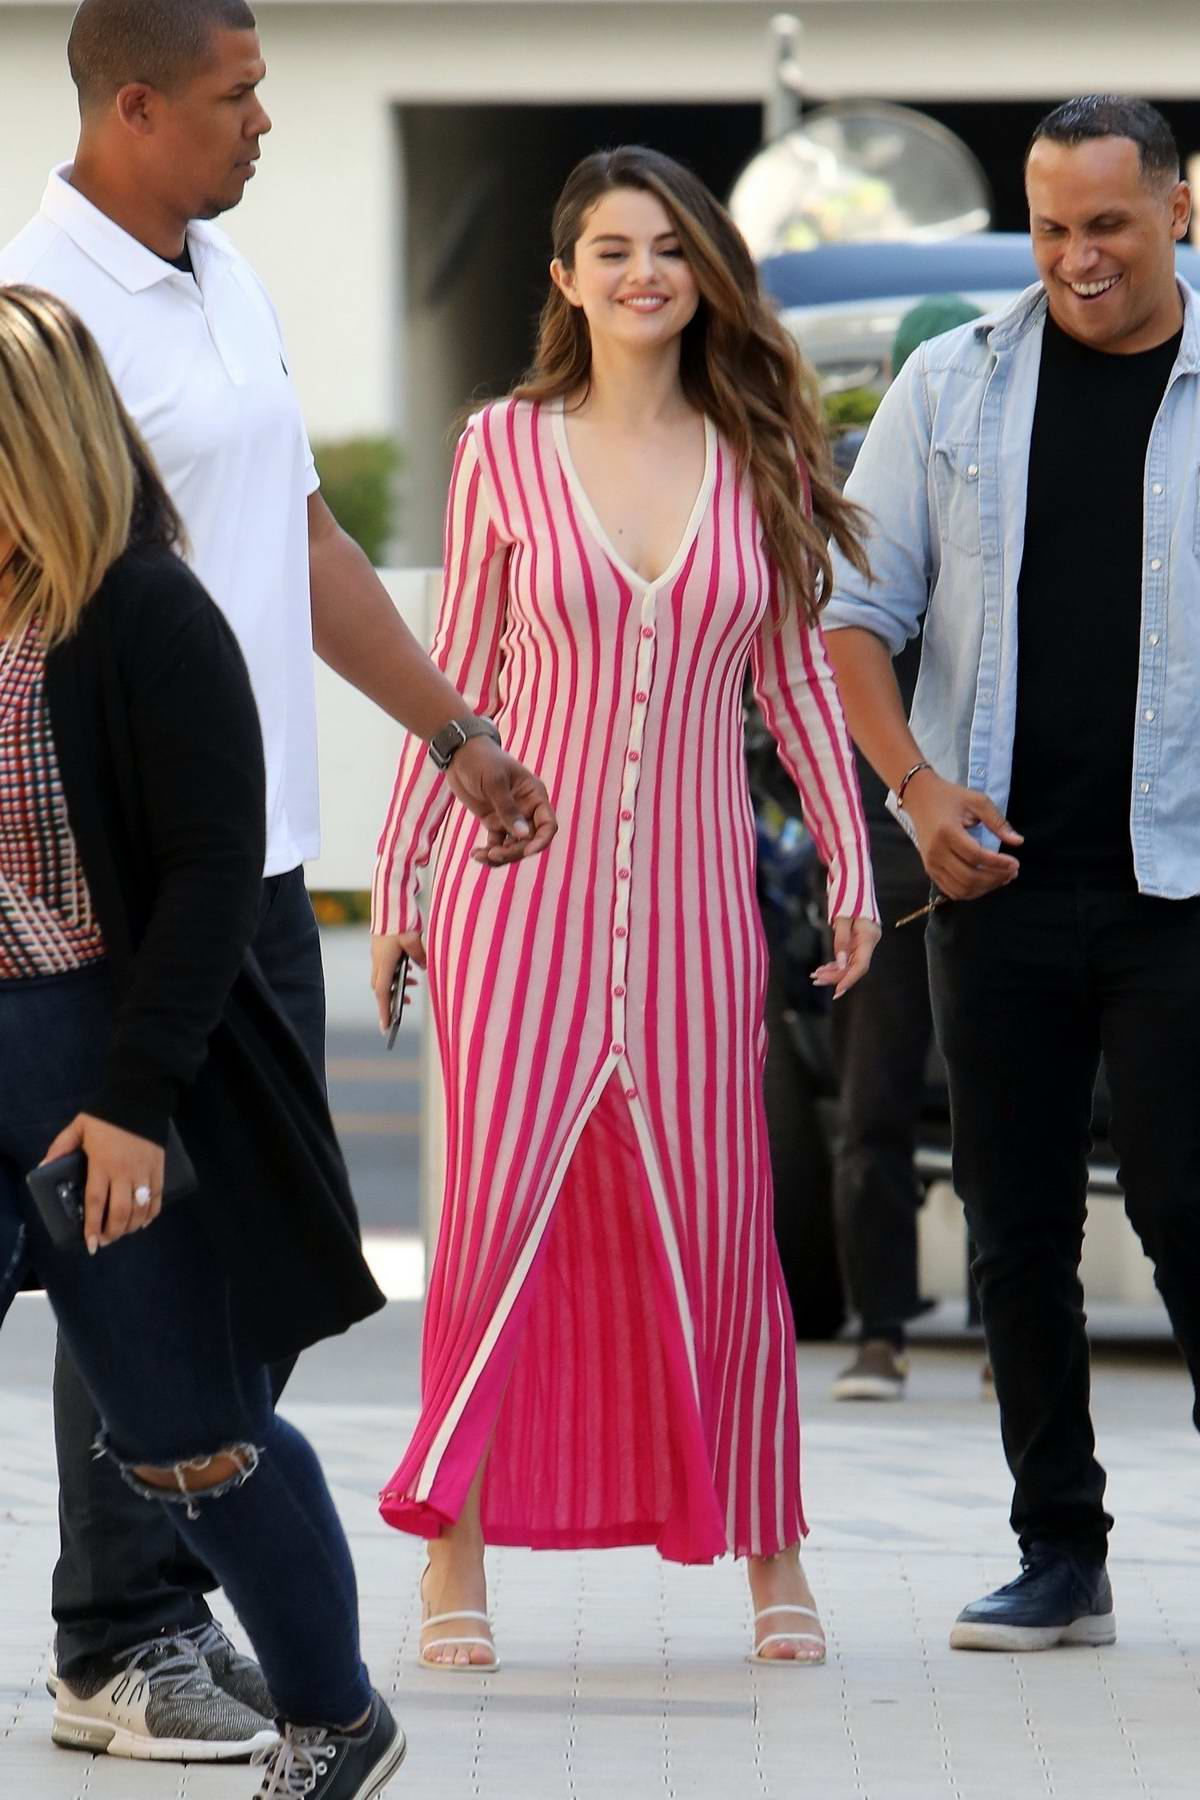 Selena Gomez looks gorgeous in a striped pink dress while out promoting her new singles in Los Angeles